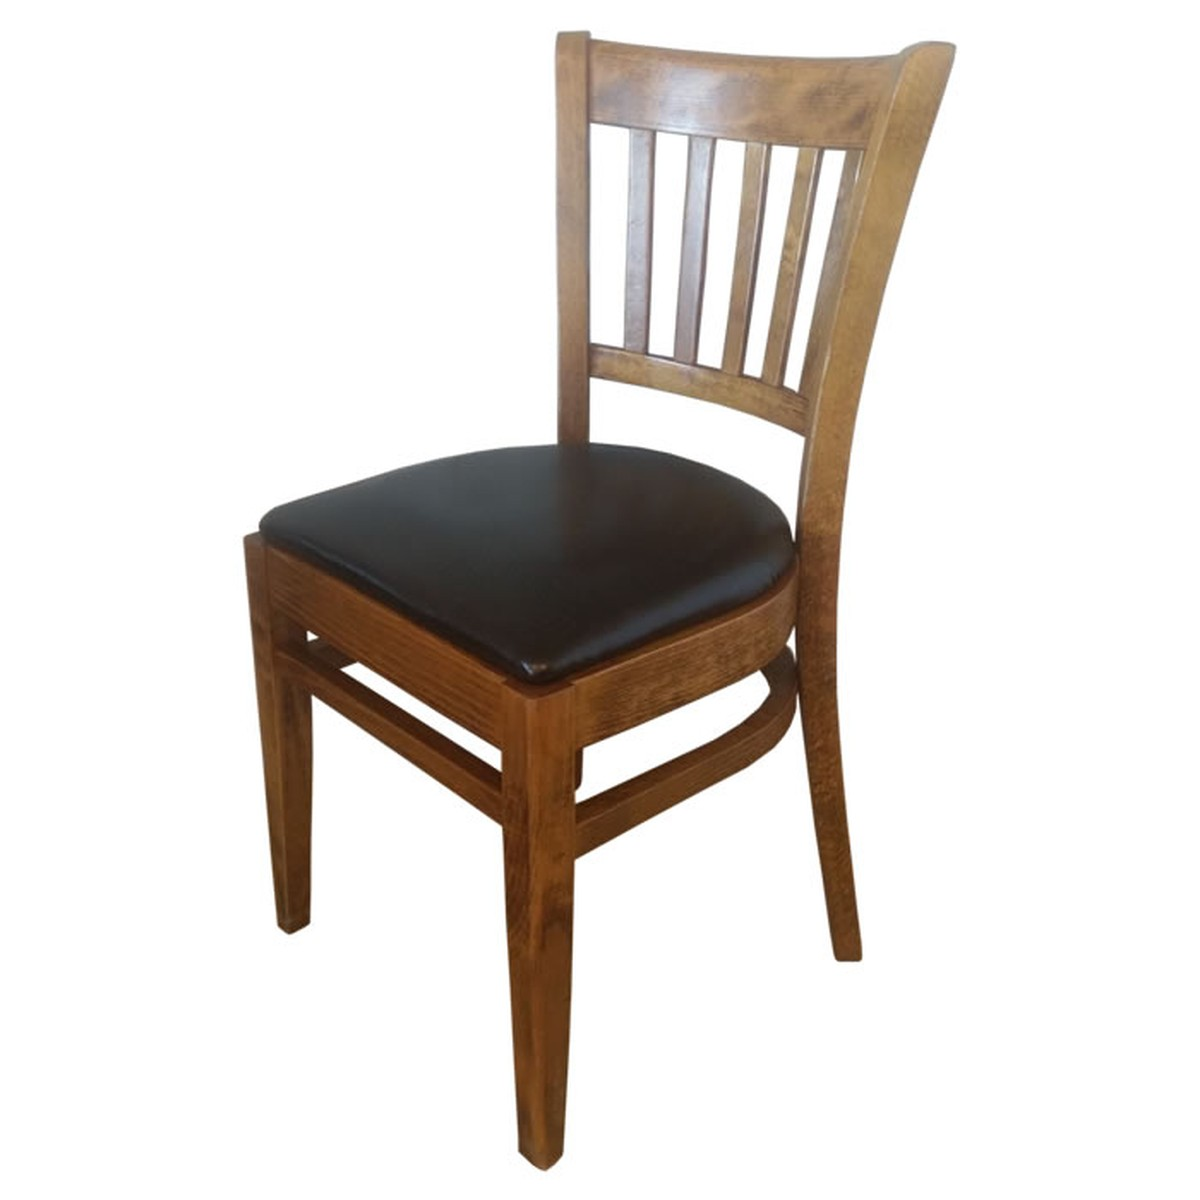 Used Restaurant Tables And Chairs Secondhand Chairs And Tables Pub And Bar Furniture